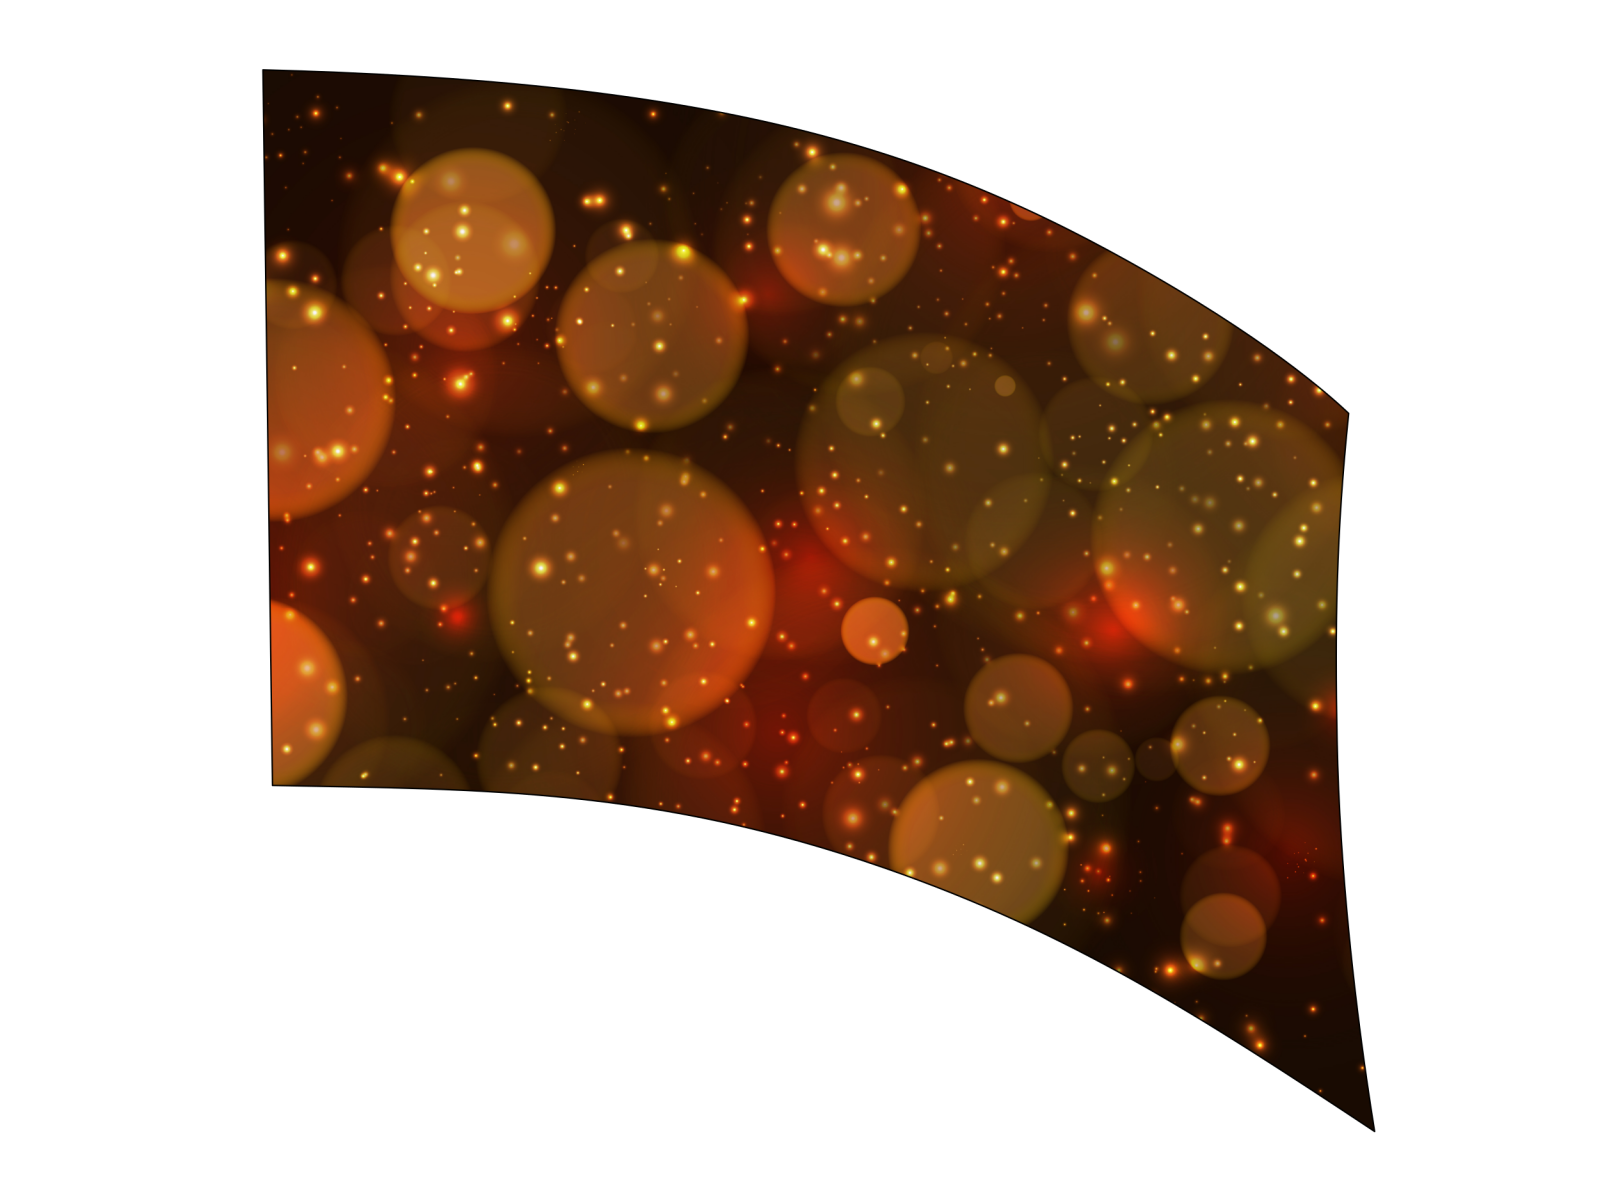 040112s - 36x52 Standard Abstract Fire Embers